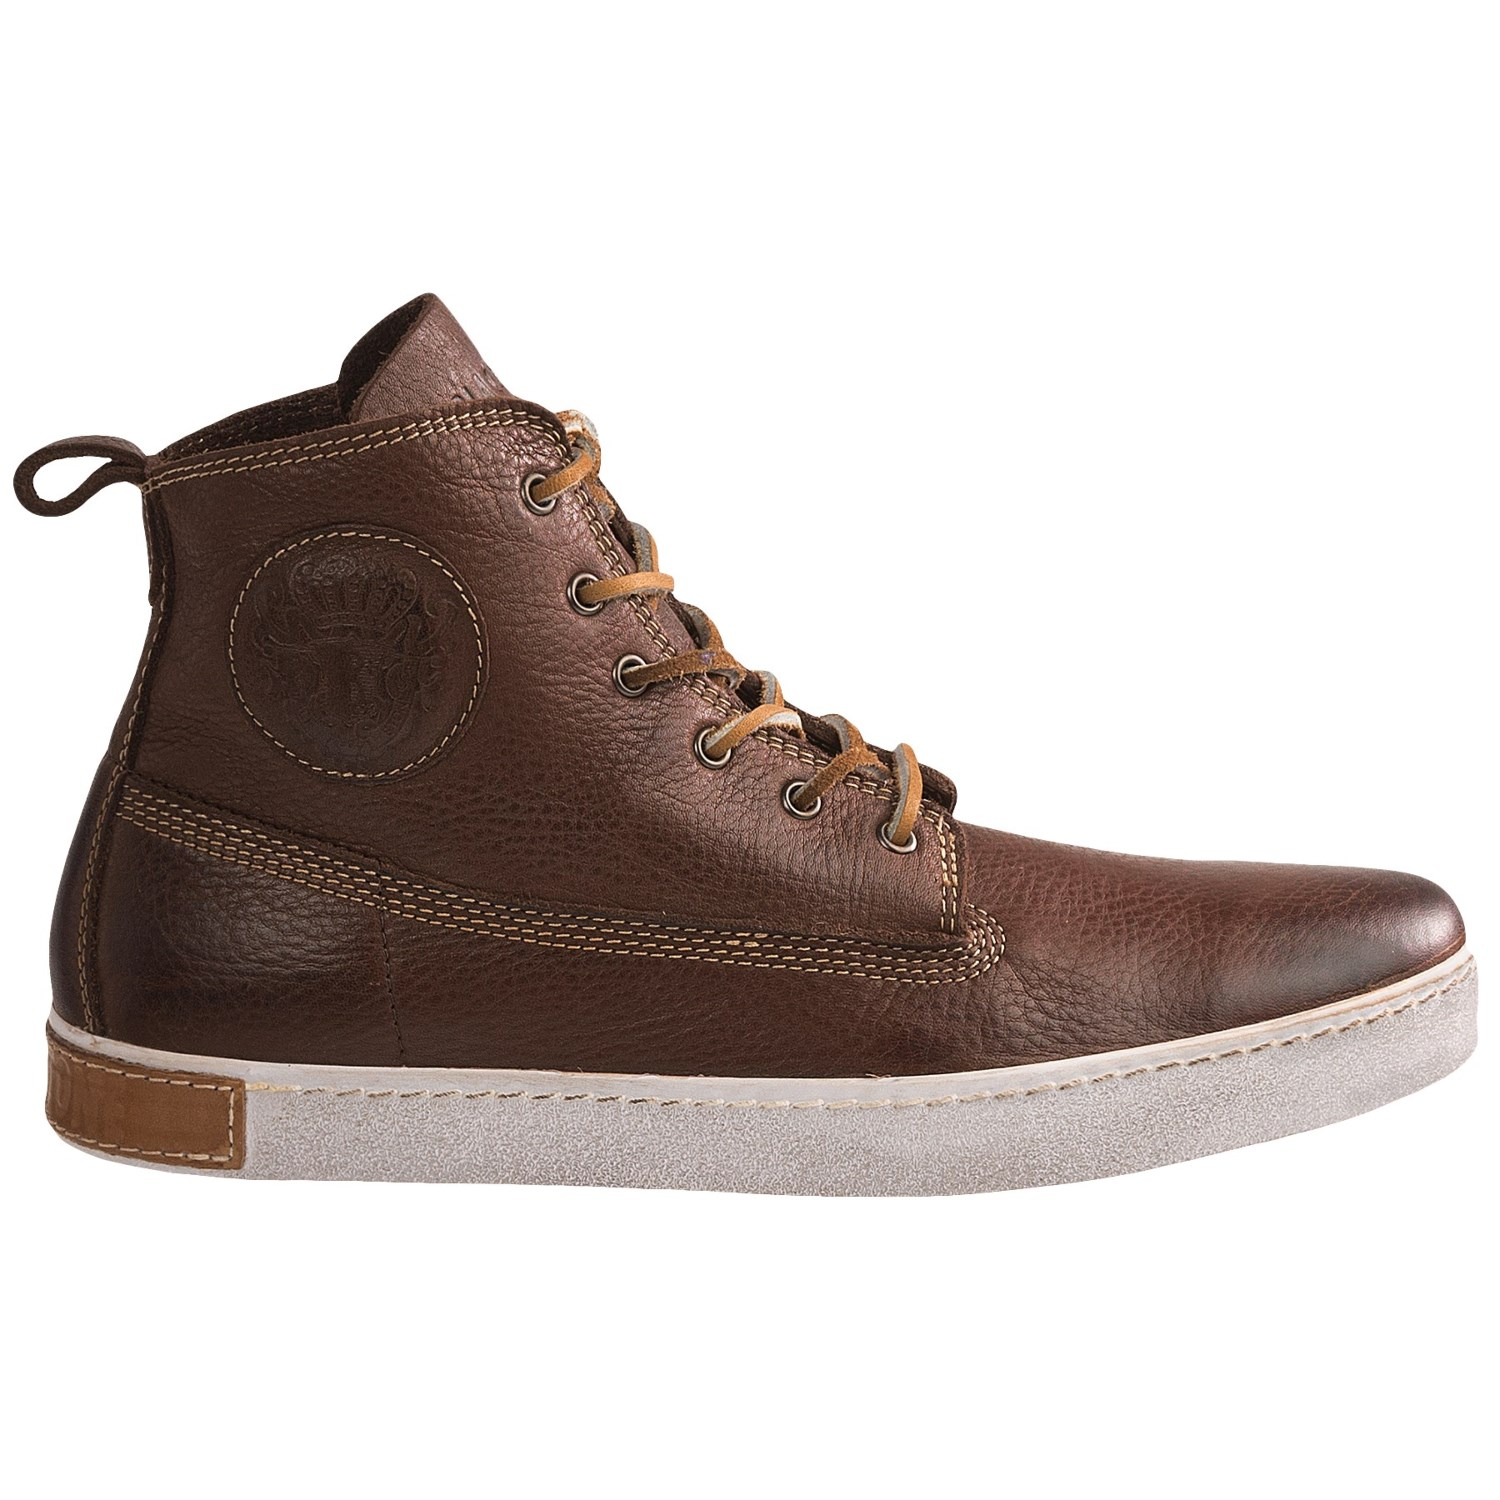 blackstone dm51 high top shoes for save 78